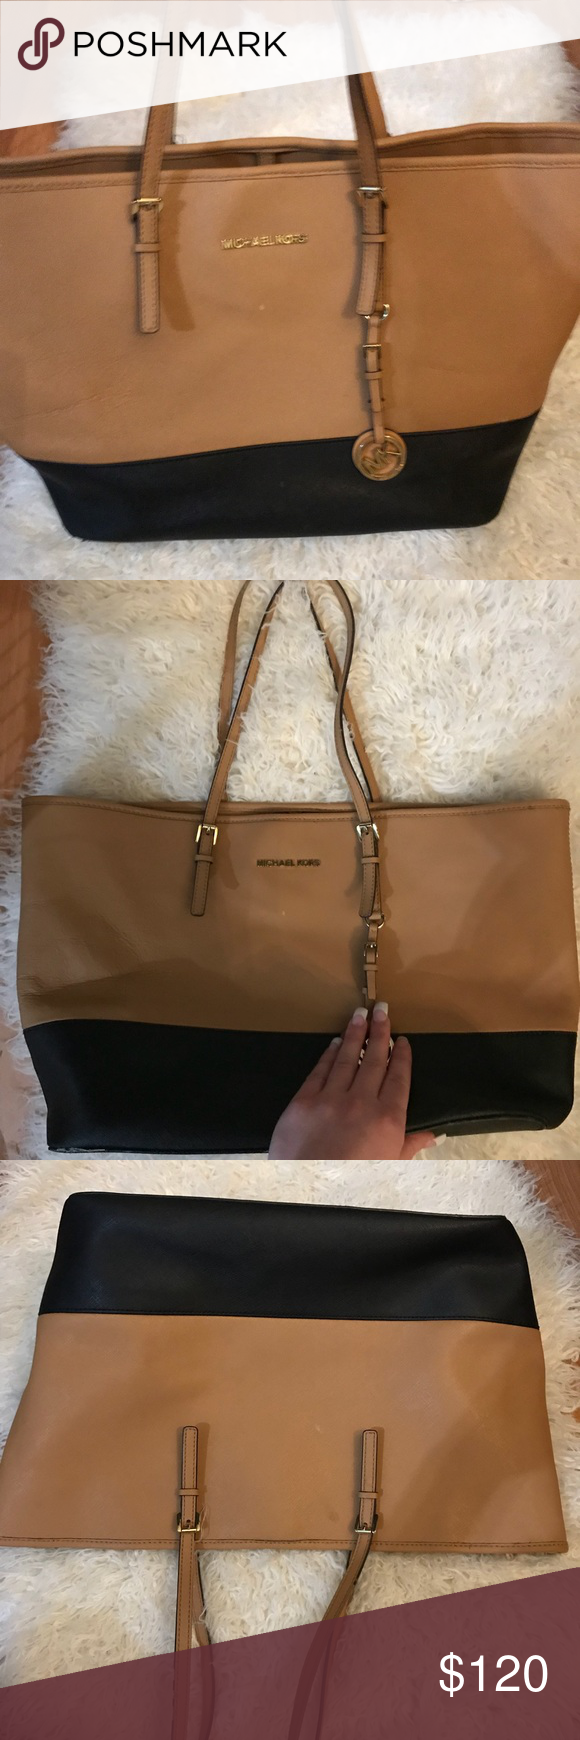 8c188be7c9f8 Authentic Michael Kors black & tan purse This purse has been loved & used  for years